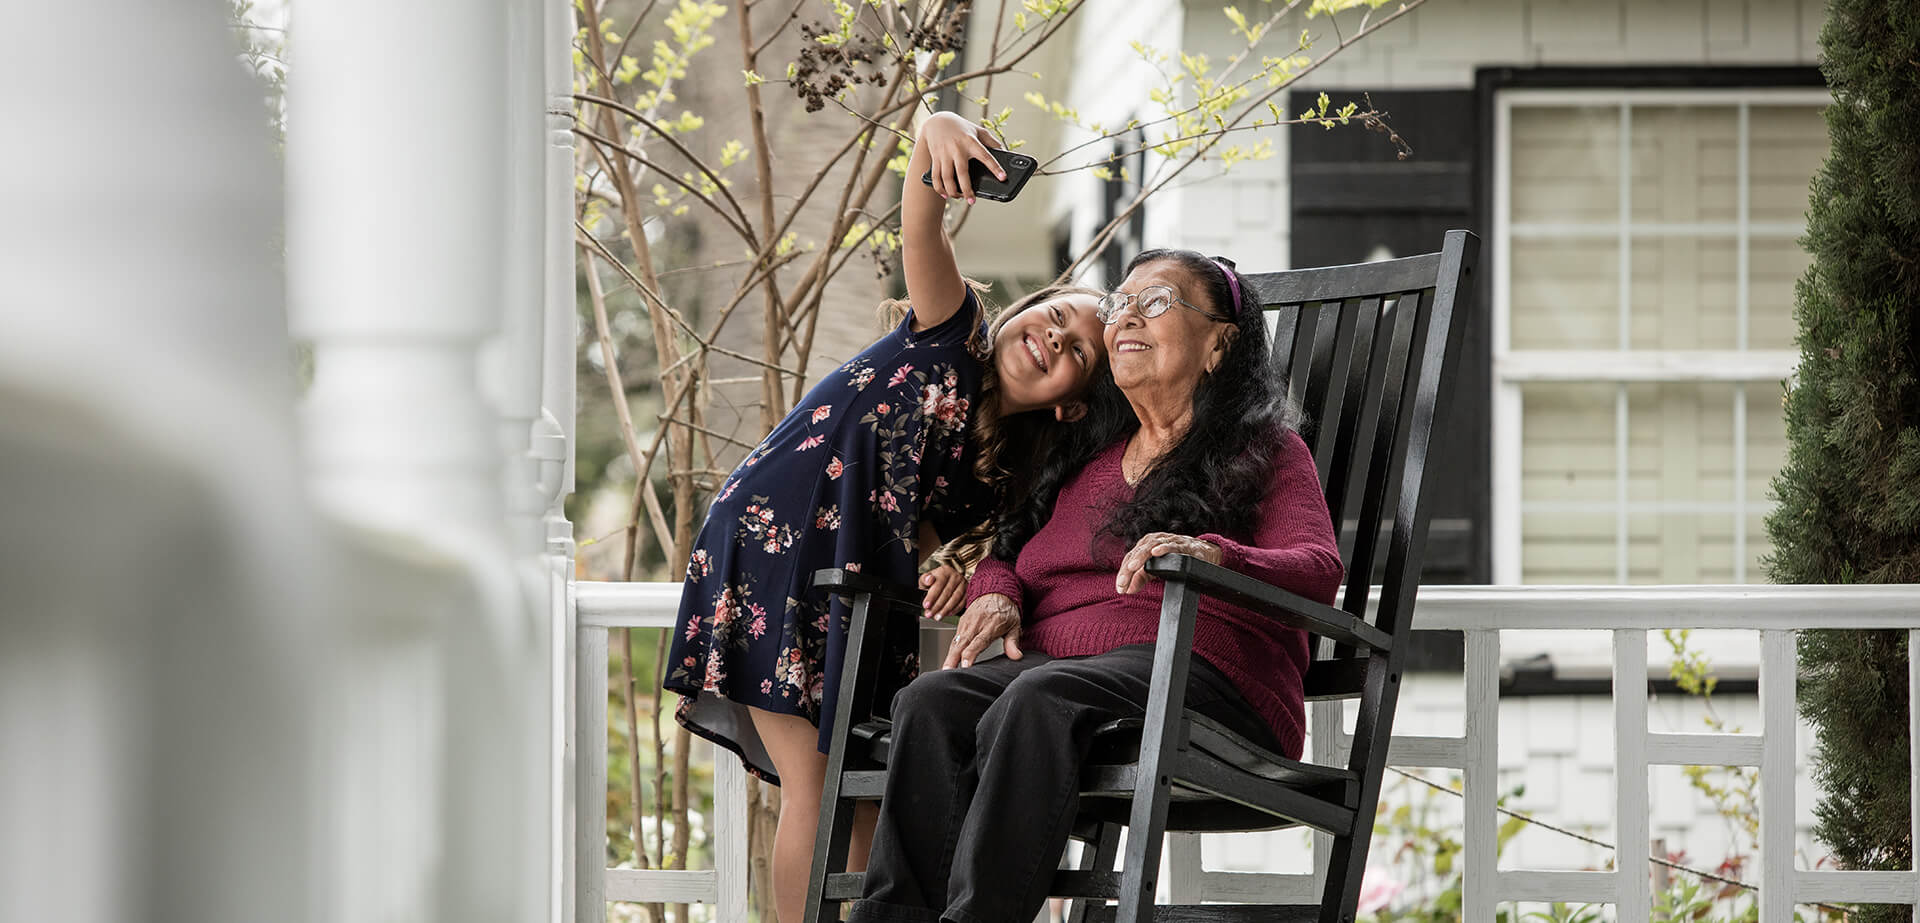 young girl and her grandmother on the front porch taking a selfie